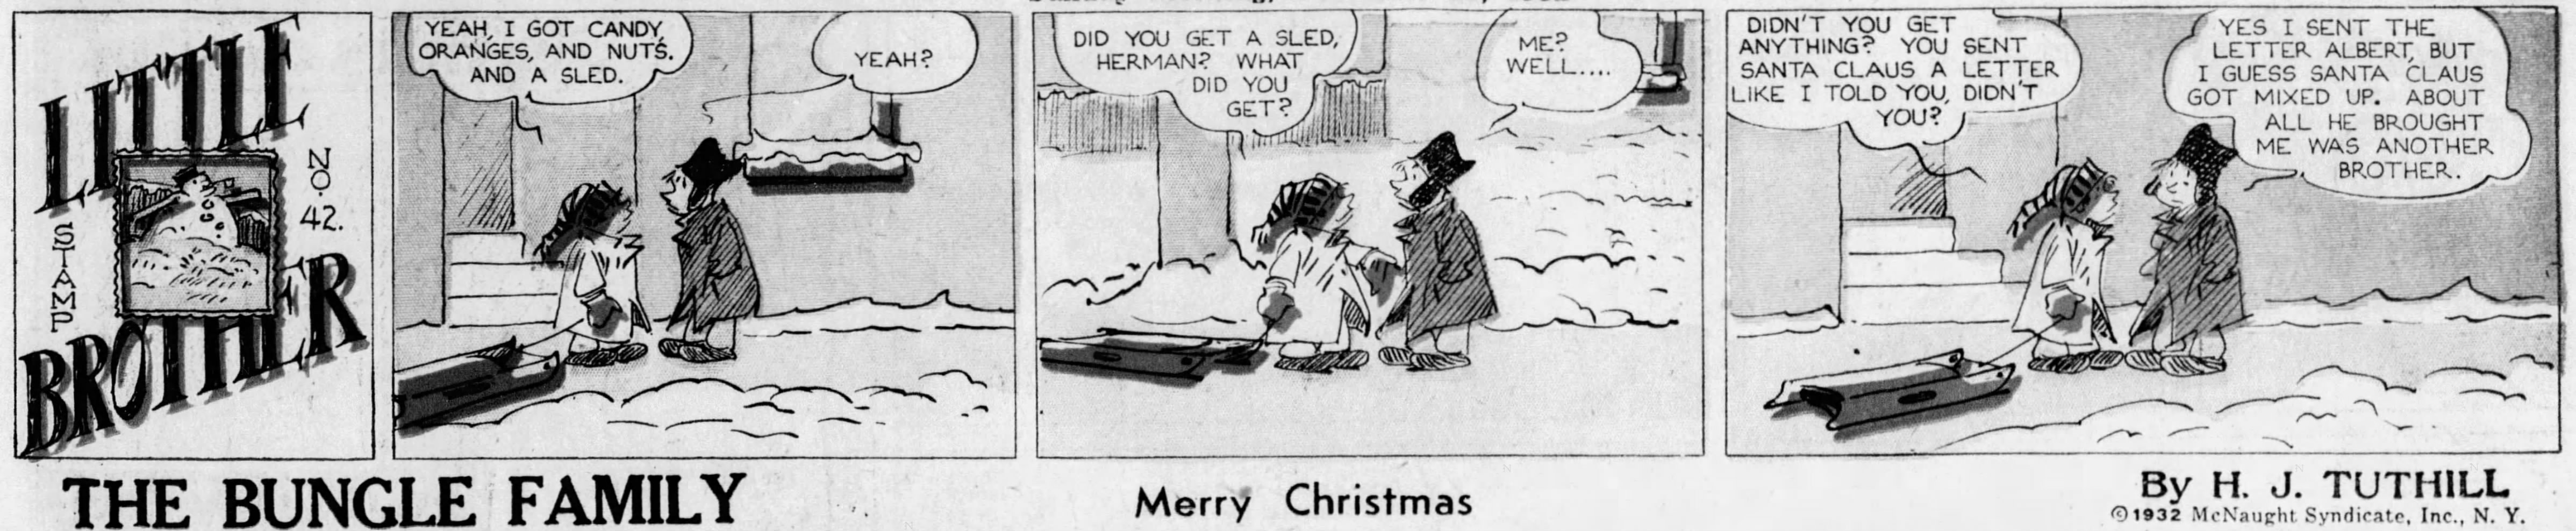 Little Brother, December 25, 1932